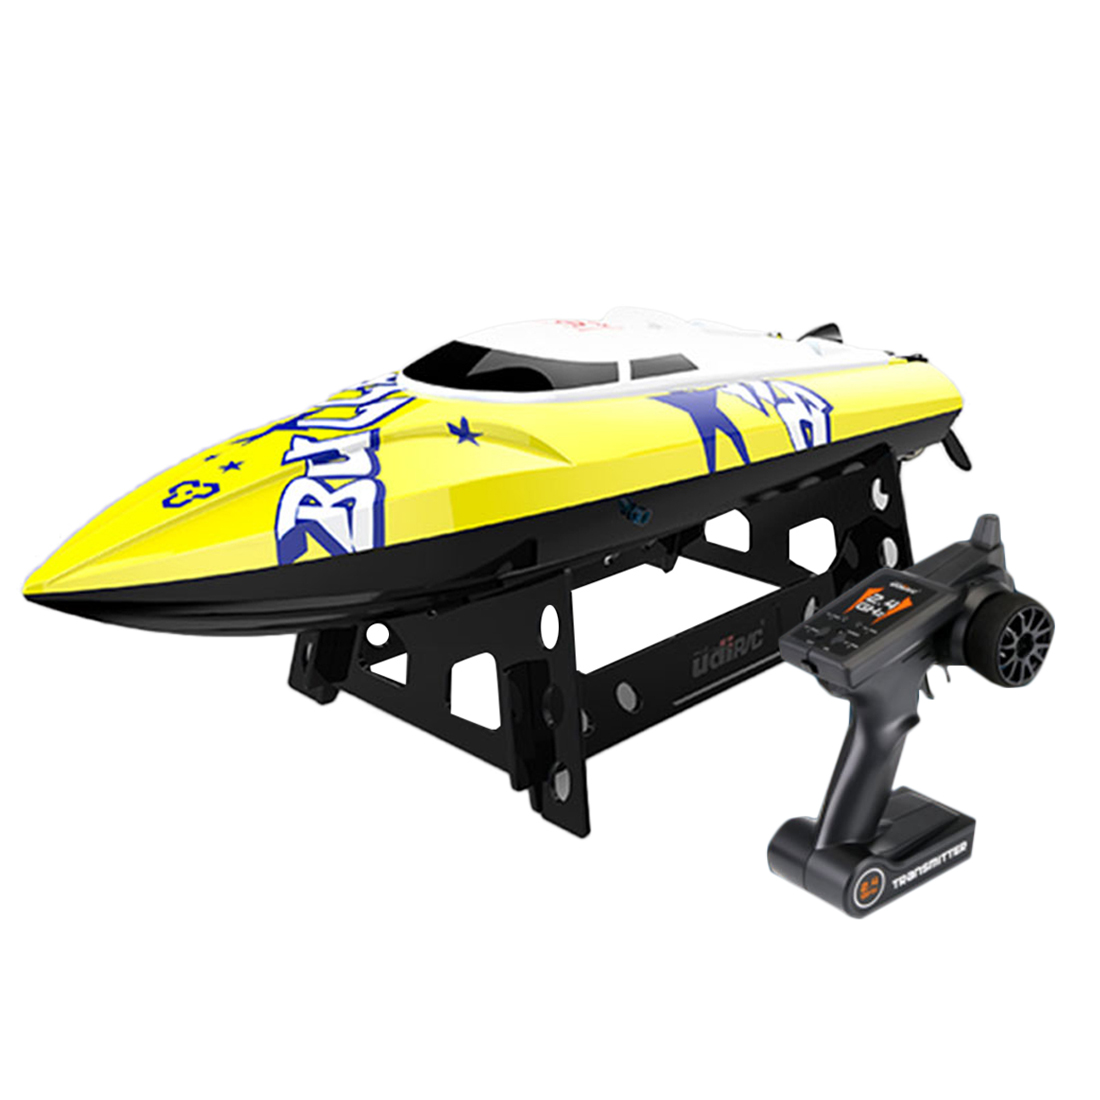 2.4G RC Boat Remote Control Yacht Electric Ship Waterproof Boy Model Toy